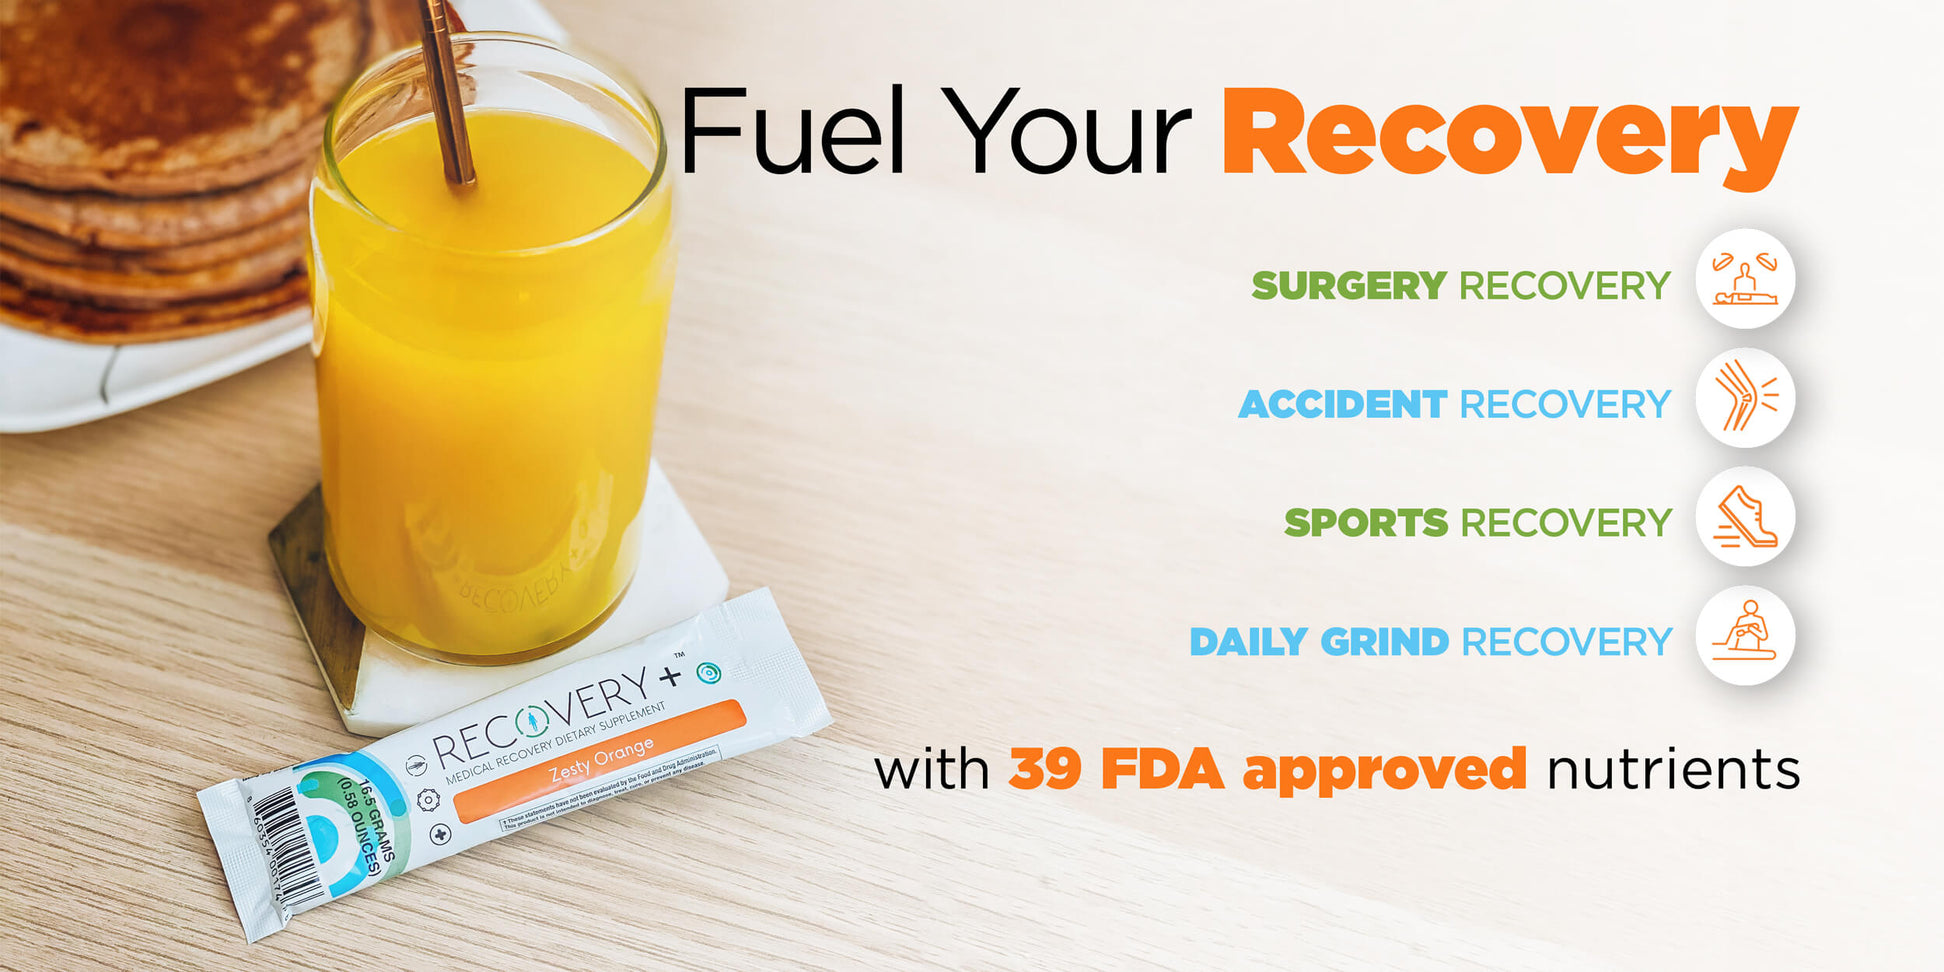 Fuel Your Recovery